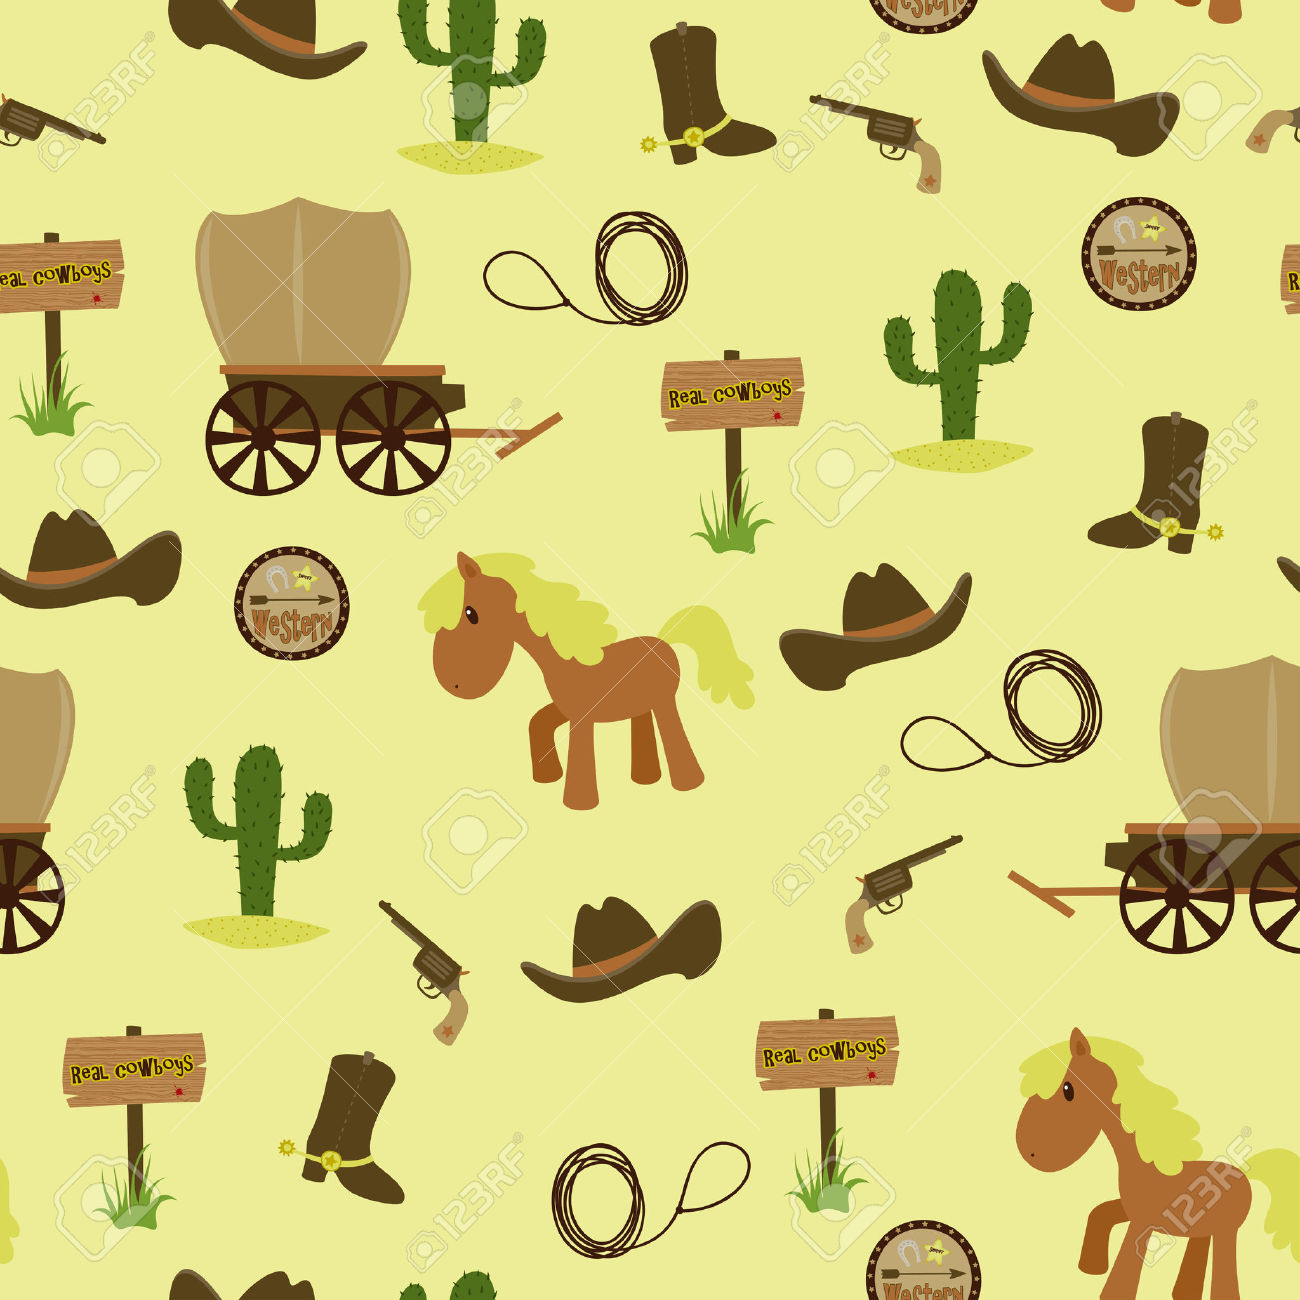 Western Themed Wallpaper